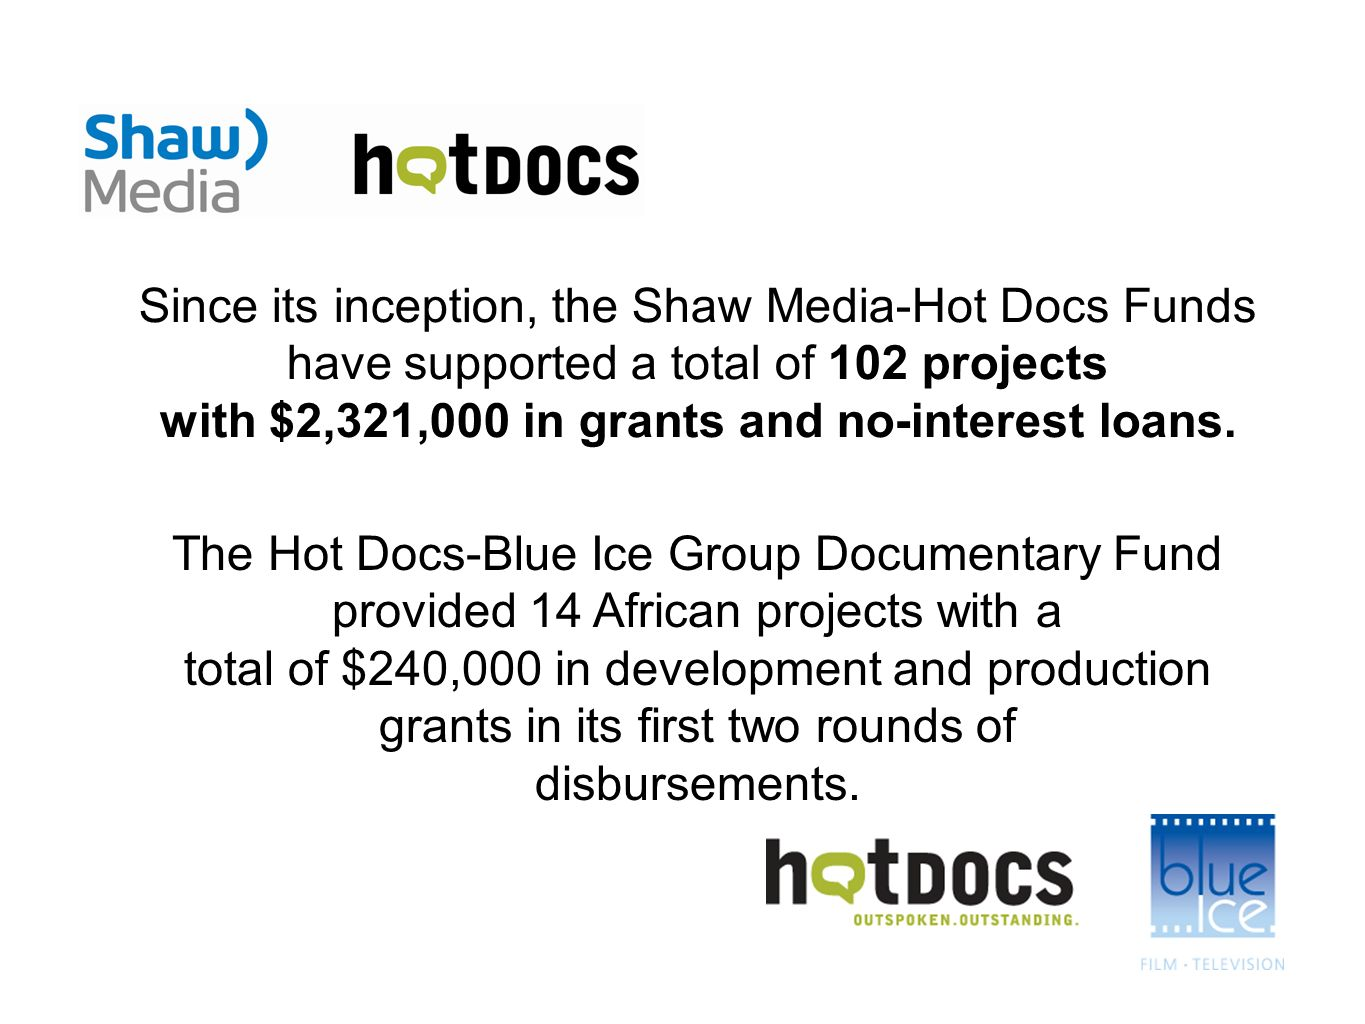 Since its inception, the Shaw Media-Hot Docs Funds have supported a total of 102 projects with $2,321,000 in grants and no-interest loans. The Hot Doc